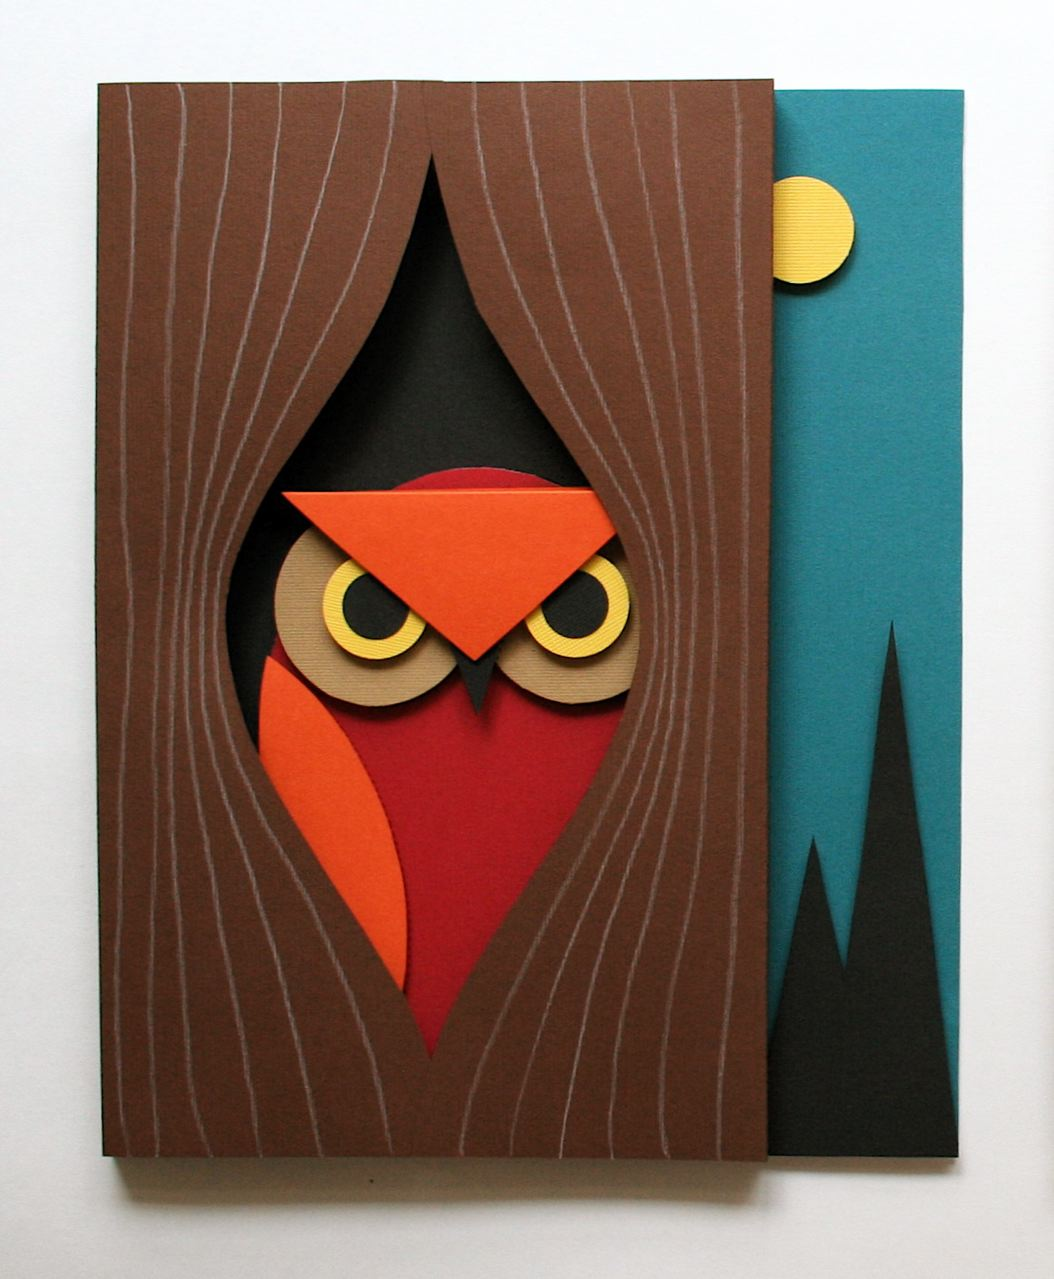 an abstraction layer Owl owl api offer an owl you purchase Owlart